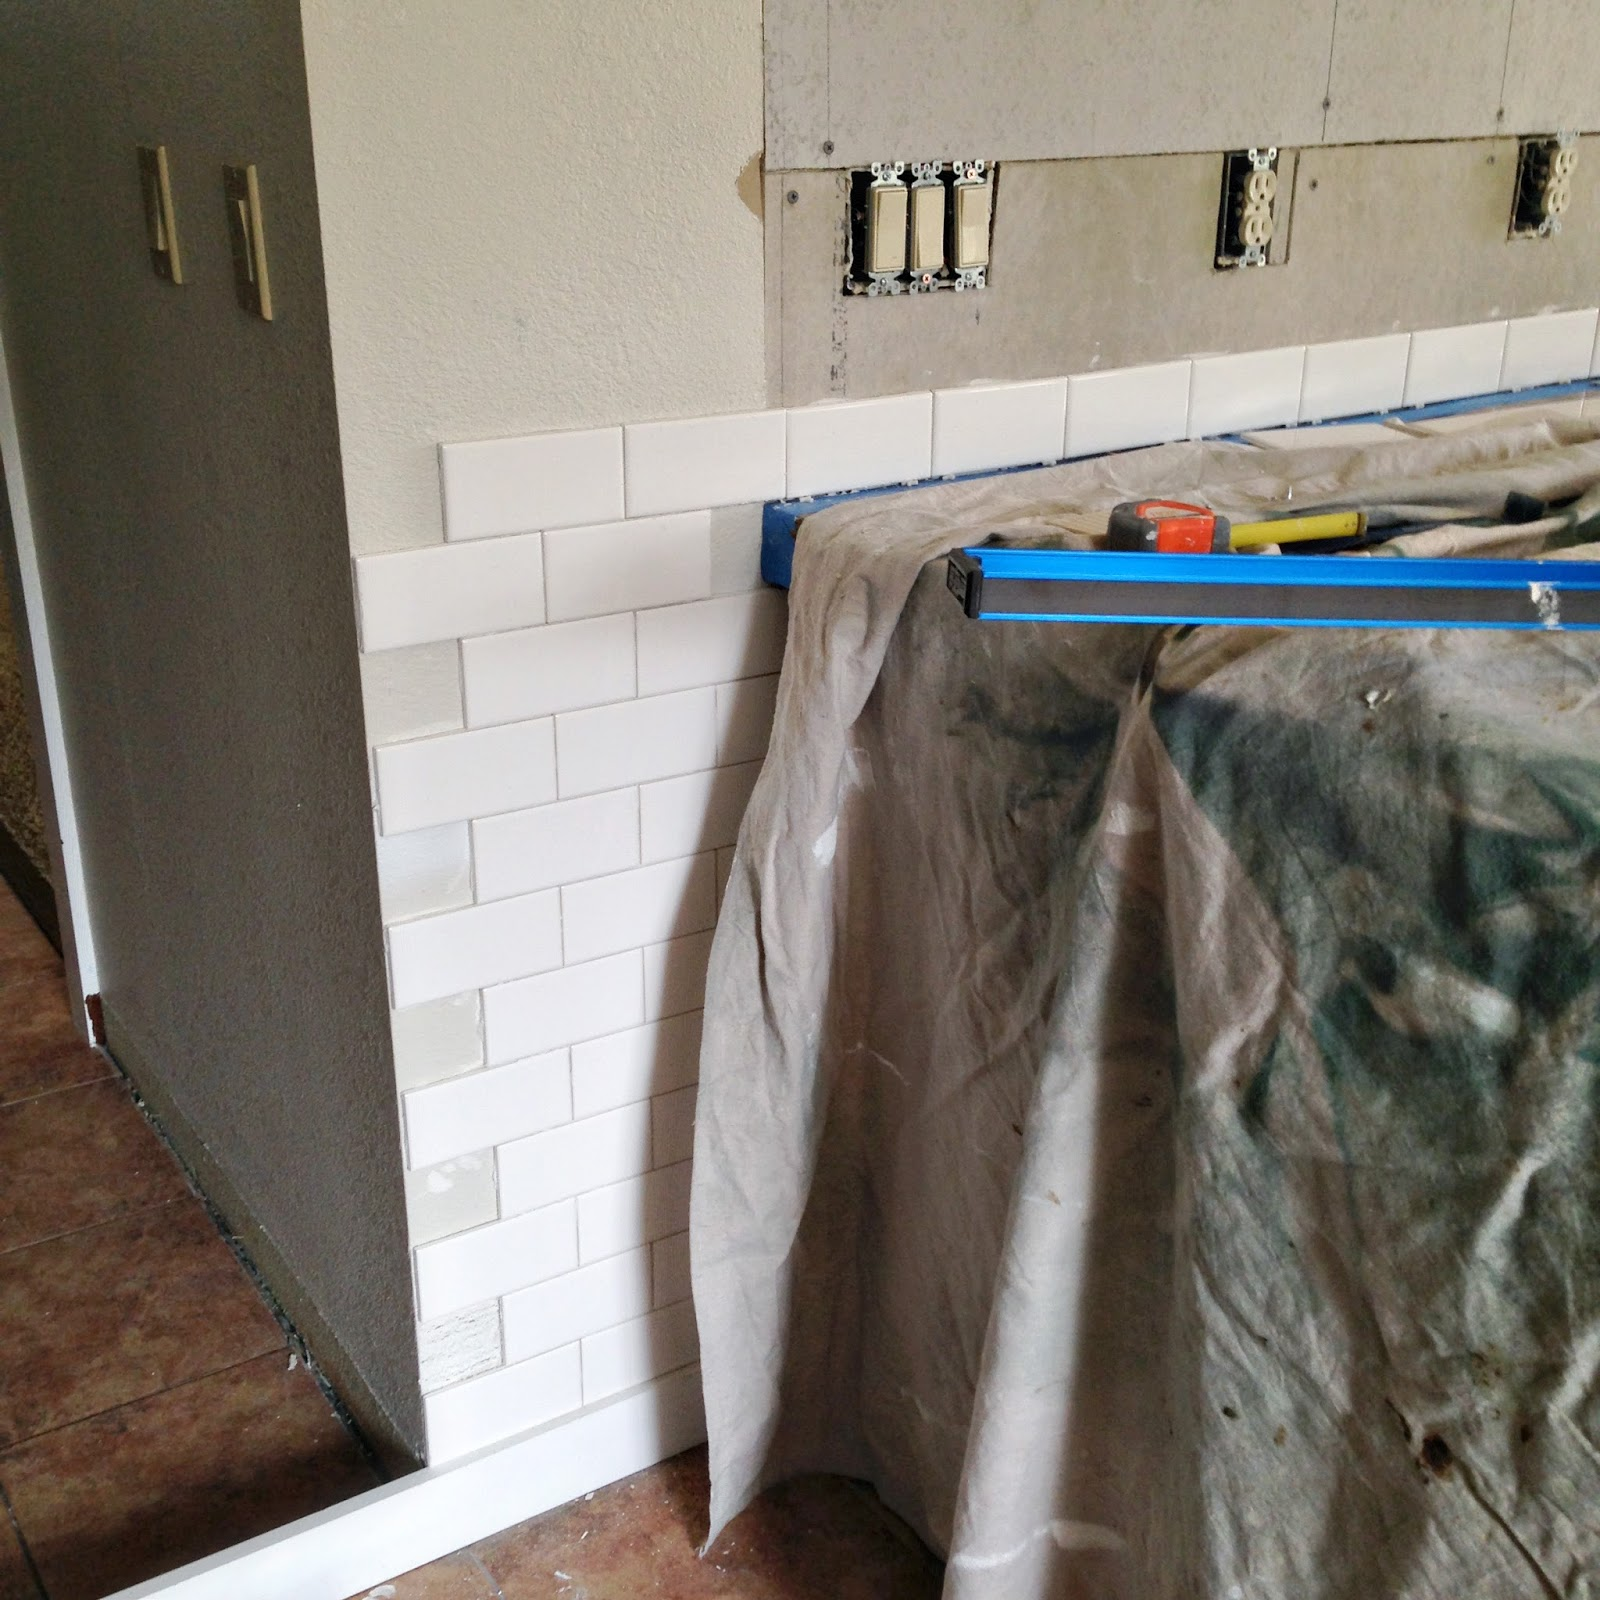 Subway tile installation tips on grouting with fusion pro subway tile installation tips on grouting with fusion pro dailygadgetfo Choice Image